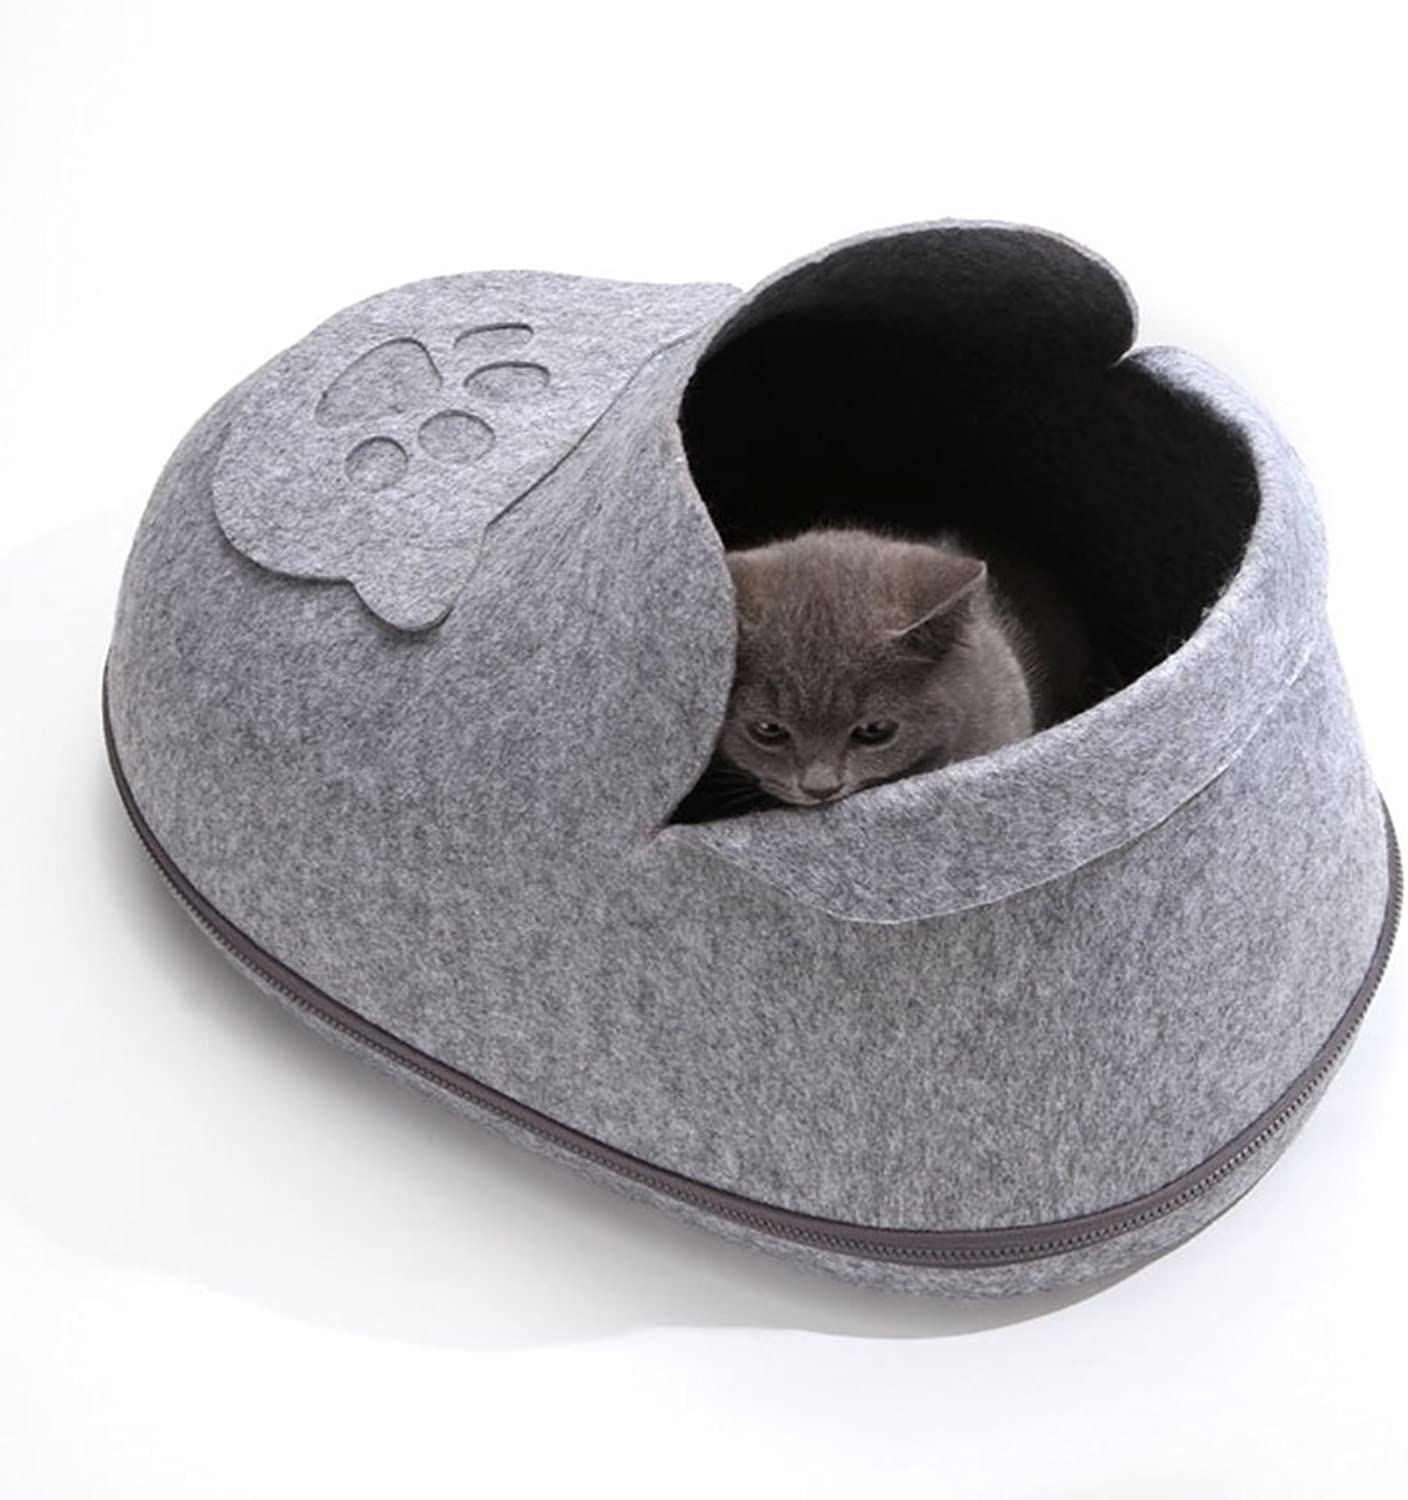 Pet Nest, Cat Nest Princess Nest, Puppy Nest, Portable Washable shoes Pet Nest, Warm Pet Mat (44X33x34) Cm